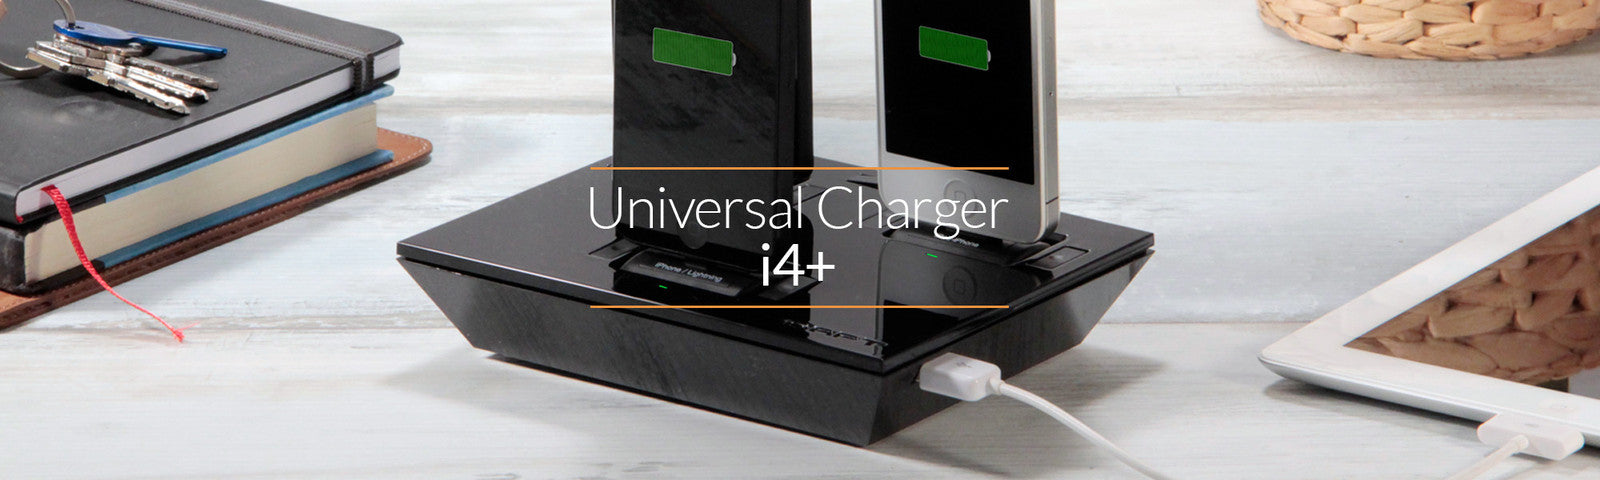 Universal Charger i4+